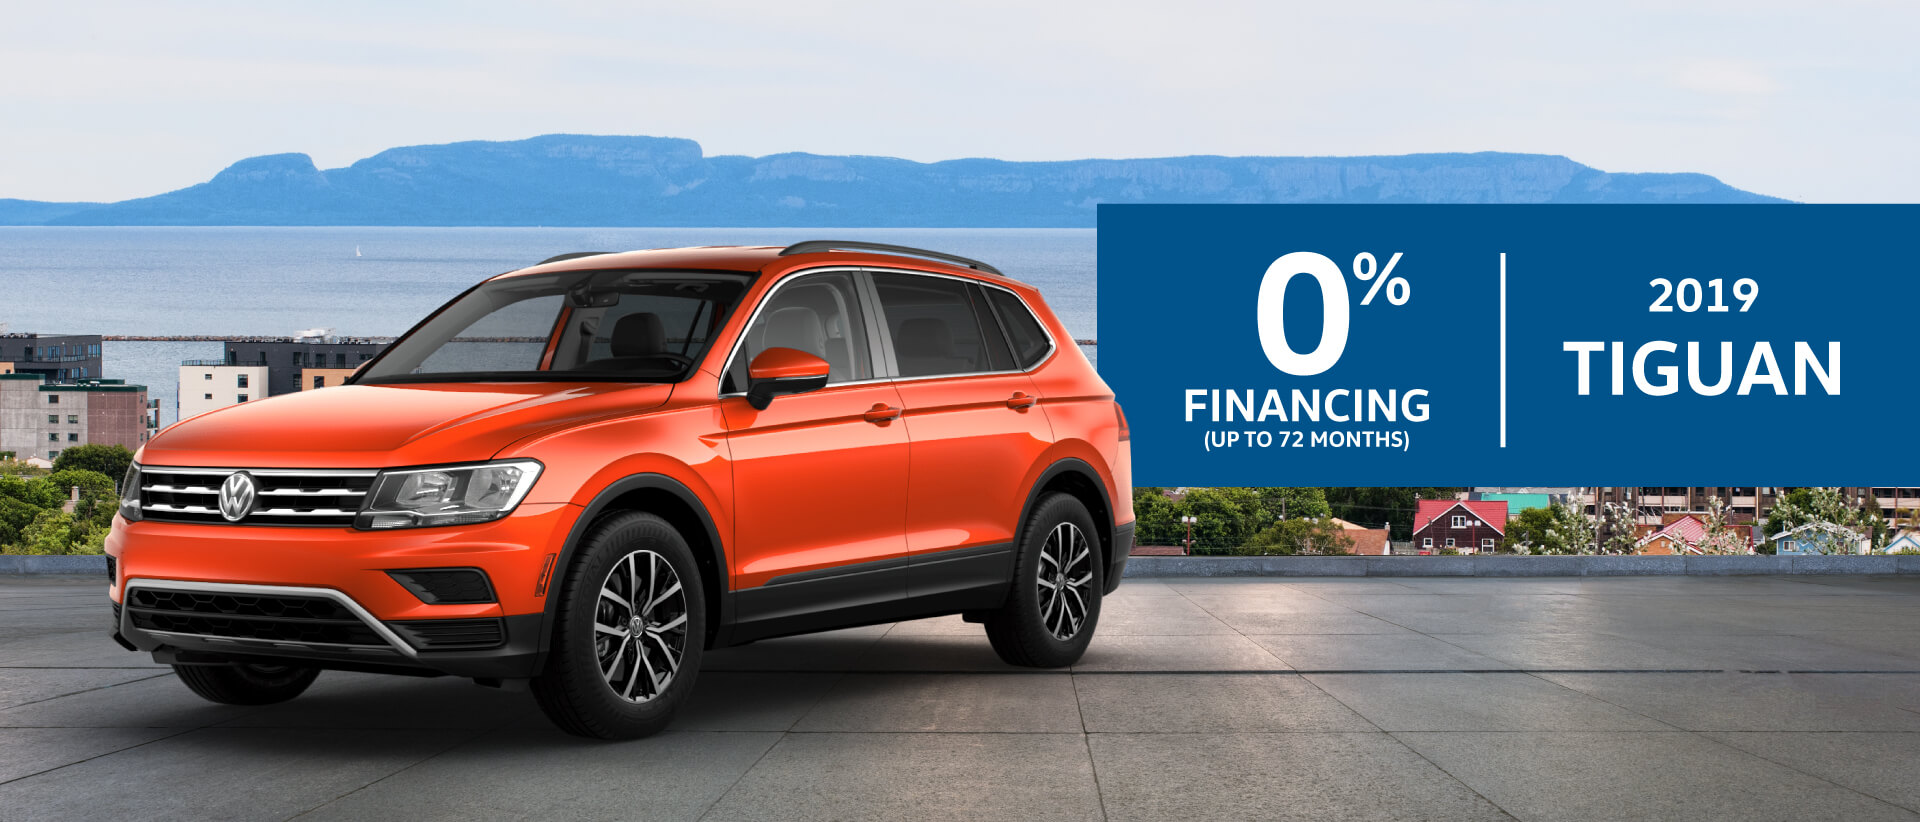 Tiguan Finance offer